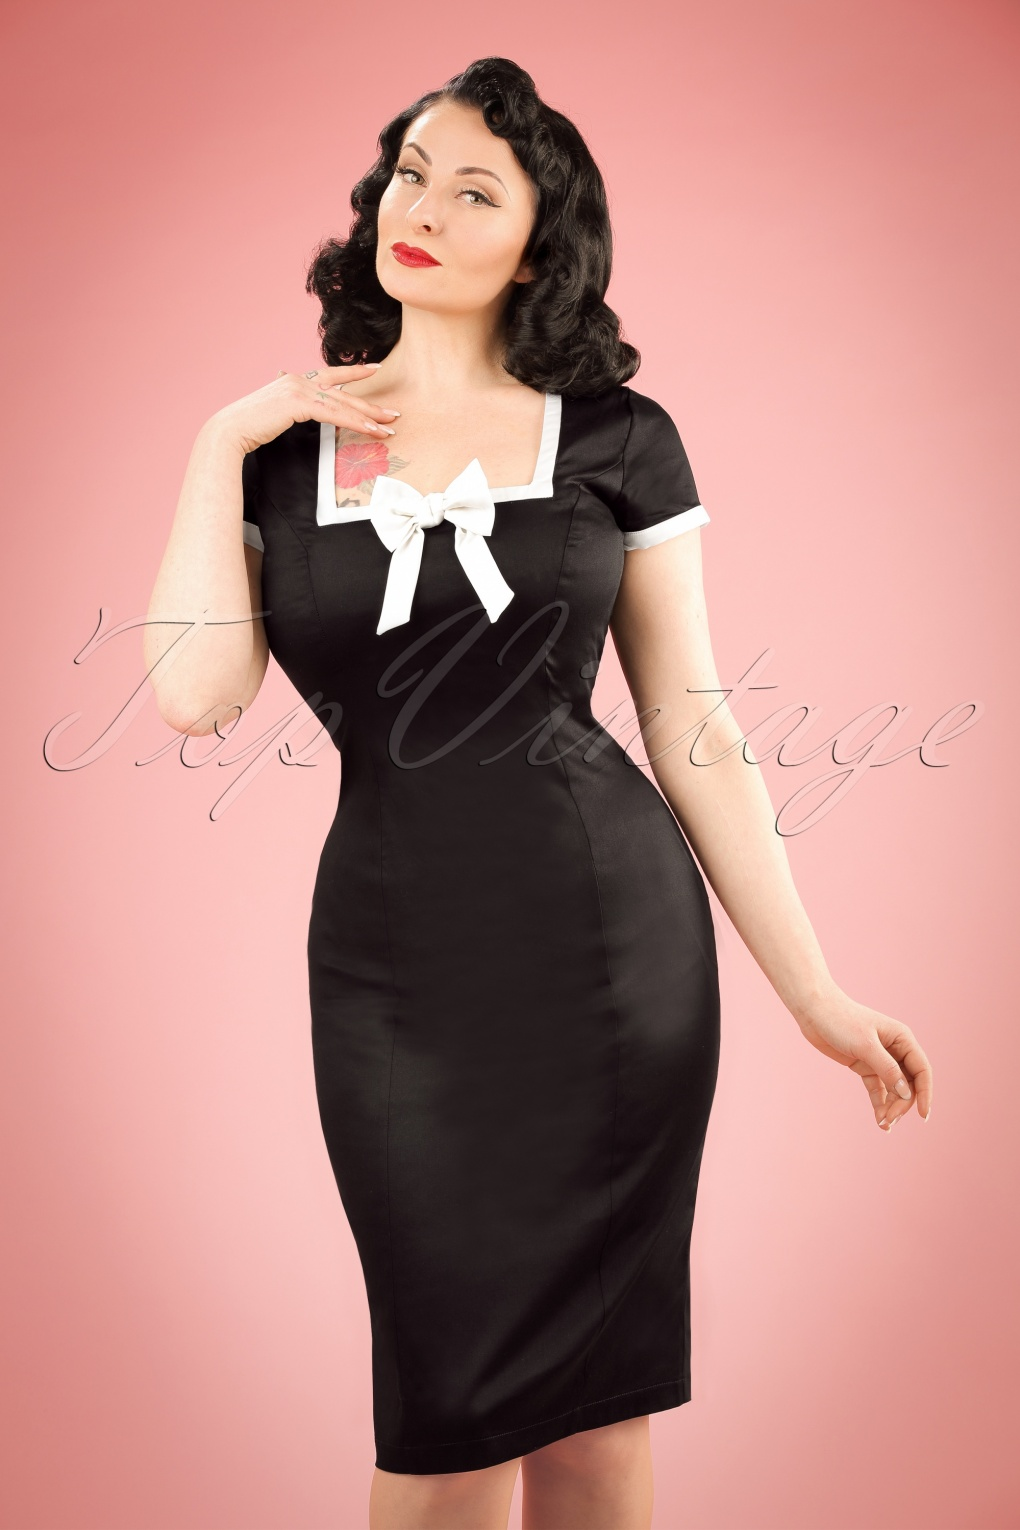 1960s Style Dresses- Retro Inspired Fashion 60s Lysa Pencil Dress in Black £20.30 AT vintagedancer.com